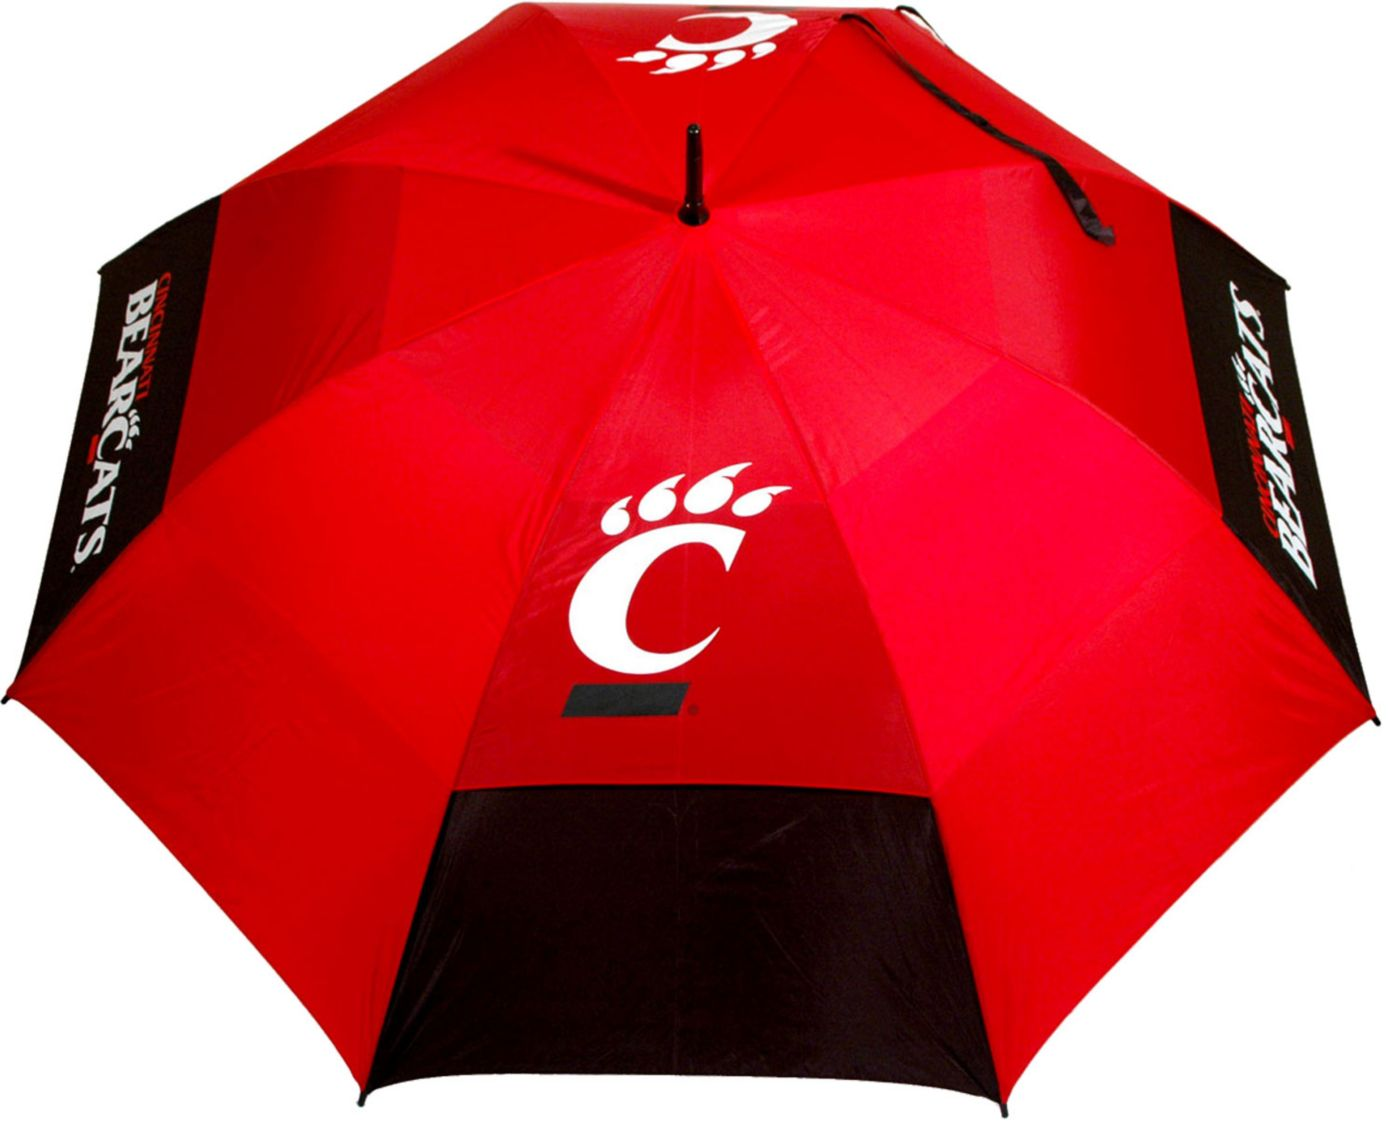 Team Golf Cincinnati Bearcats Umbrella